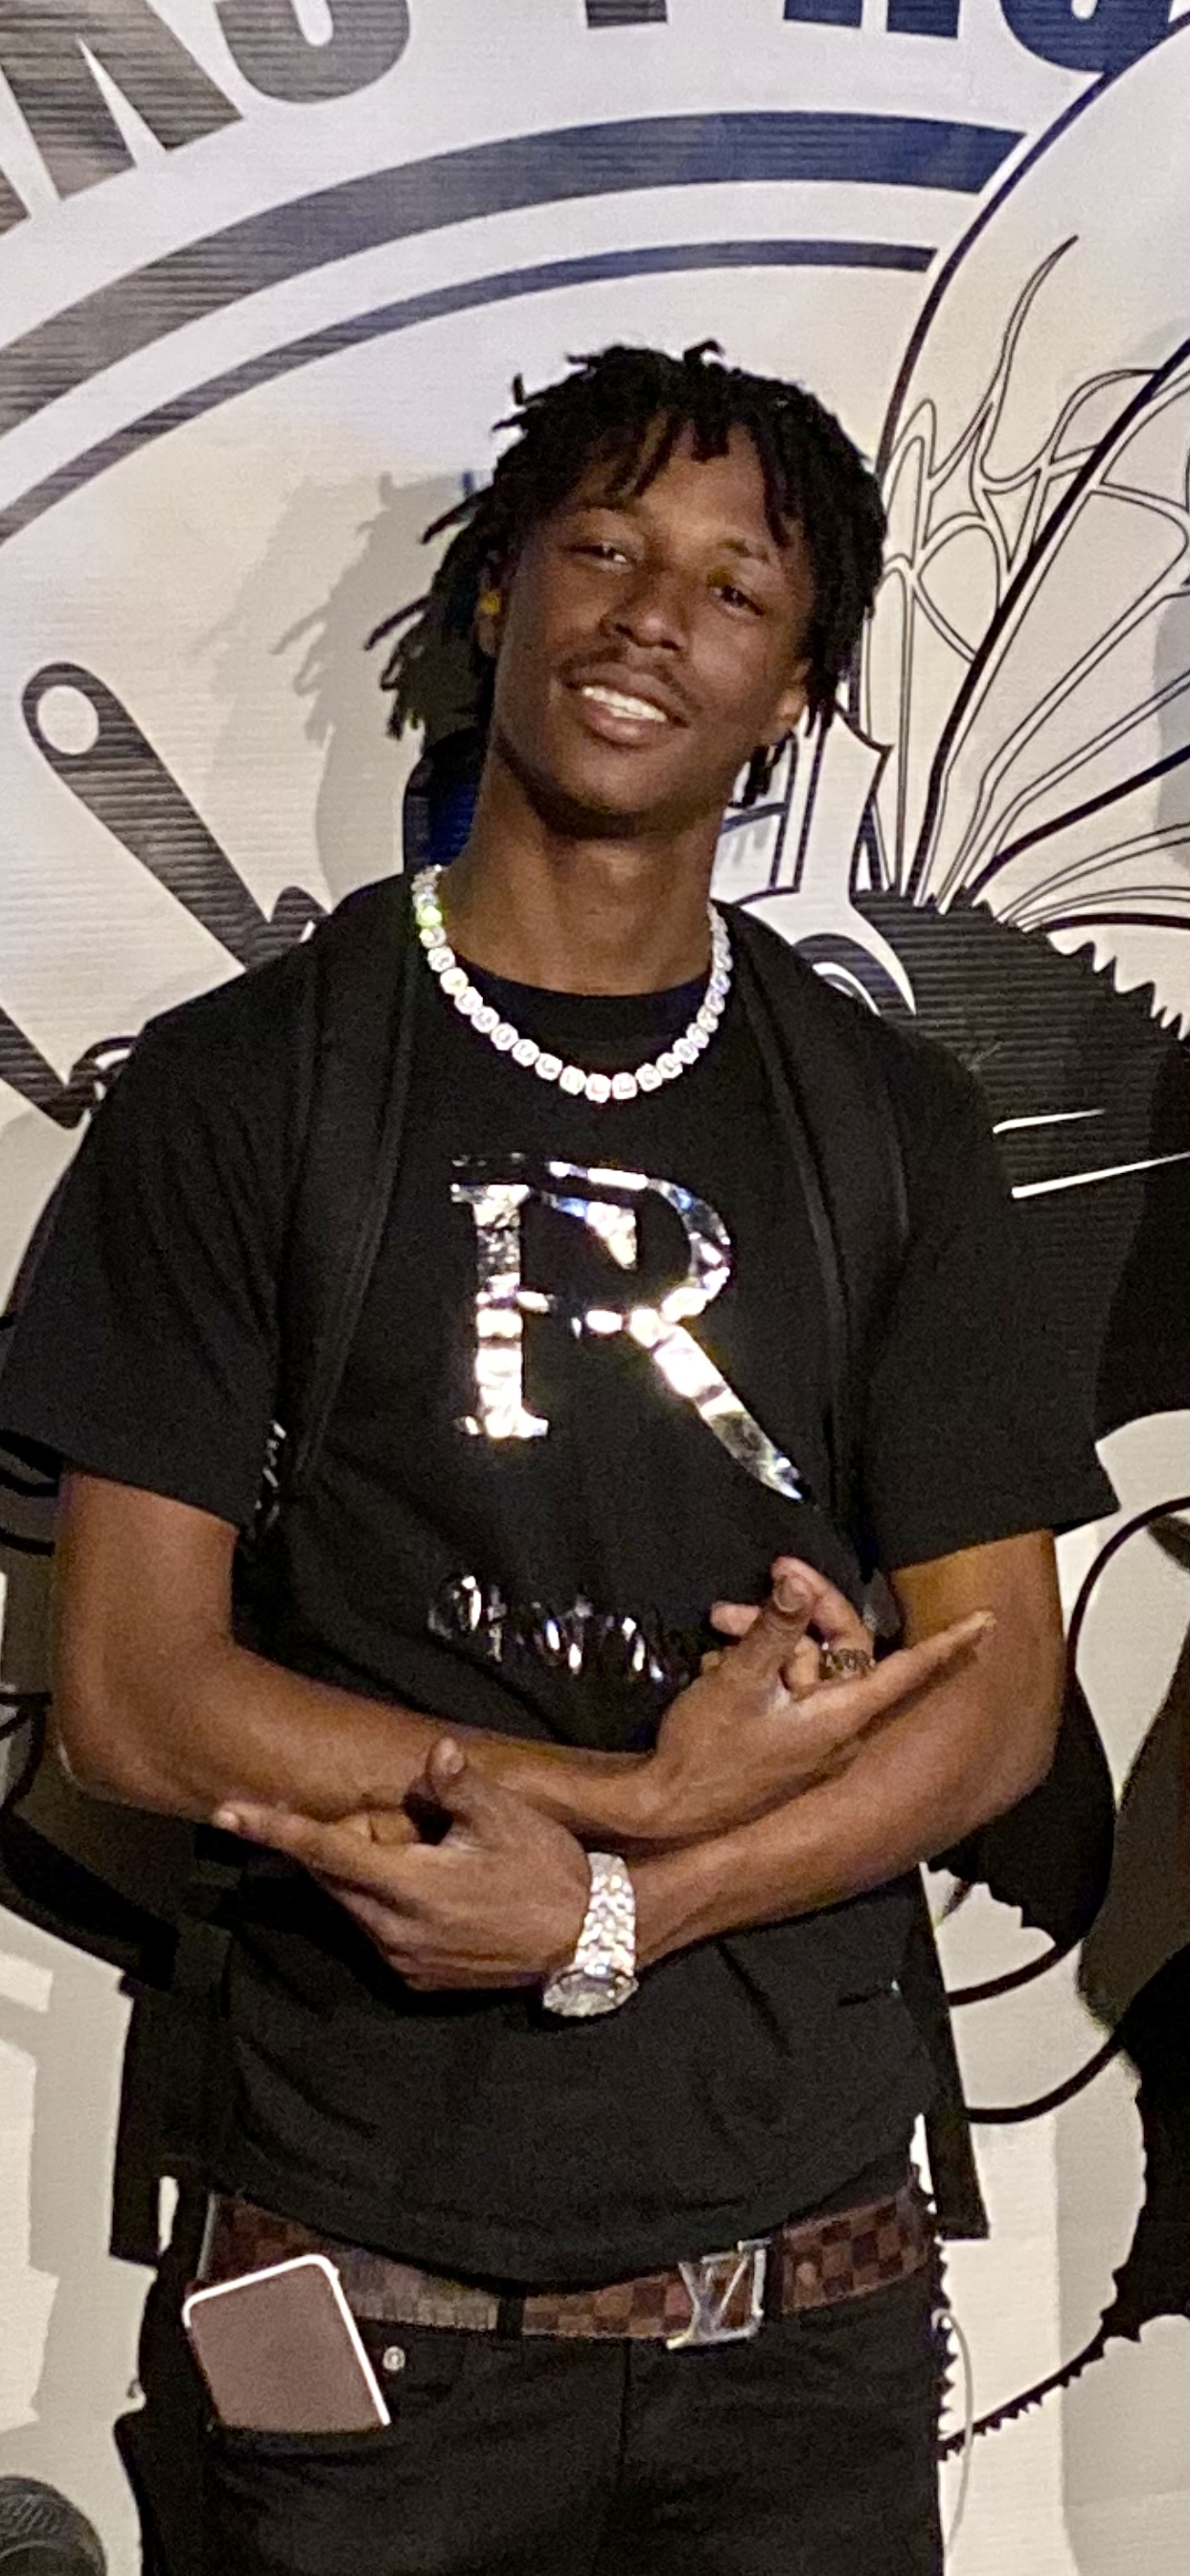 Frunt Ro da Youngin is set to be the Next Big Powerhouse of Hip Hop and R&B